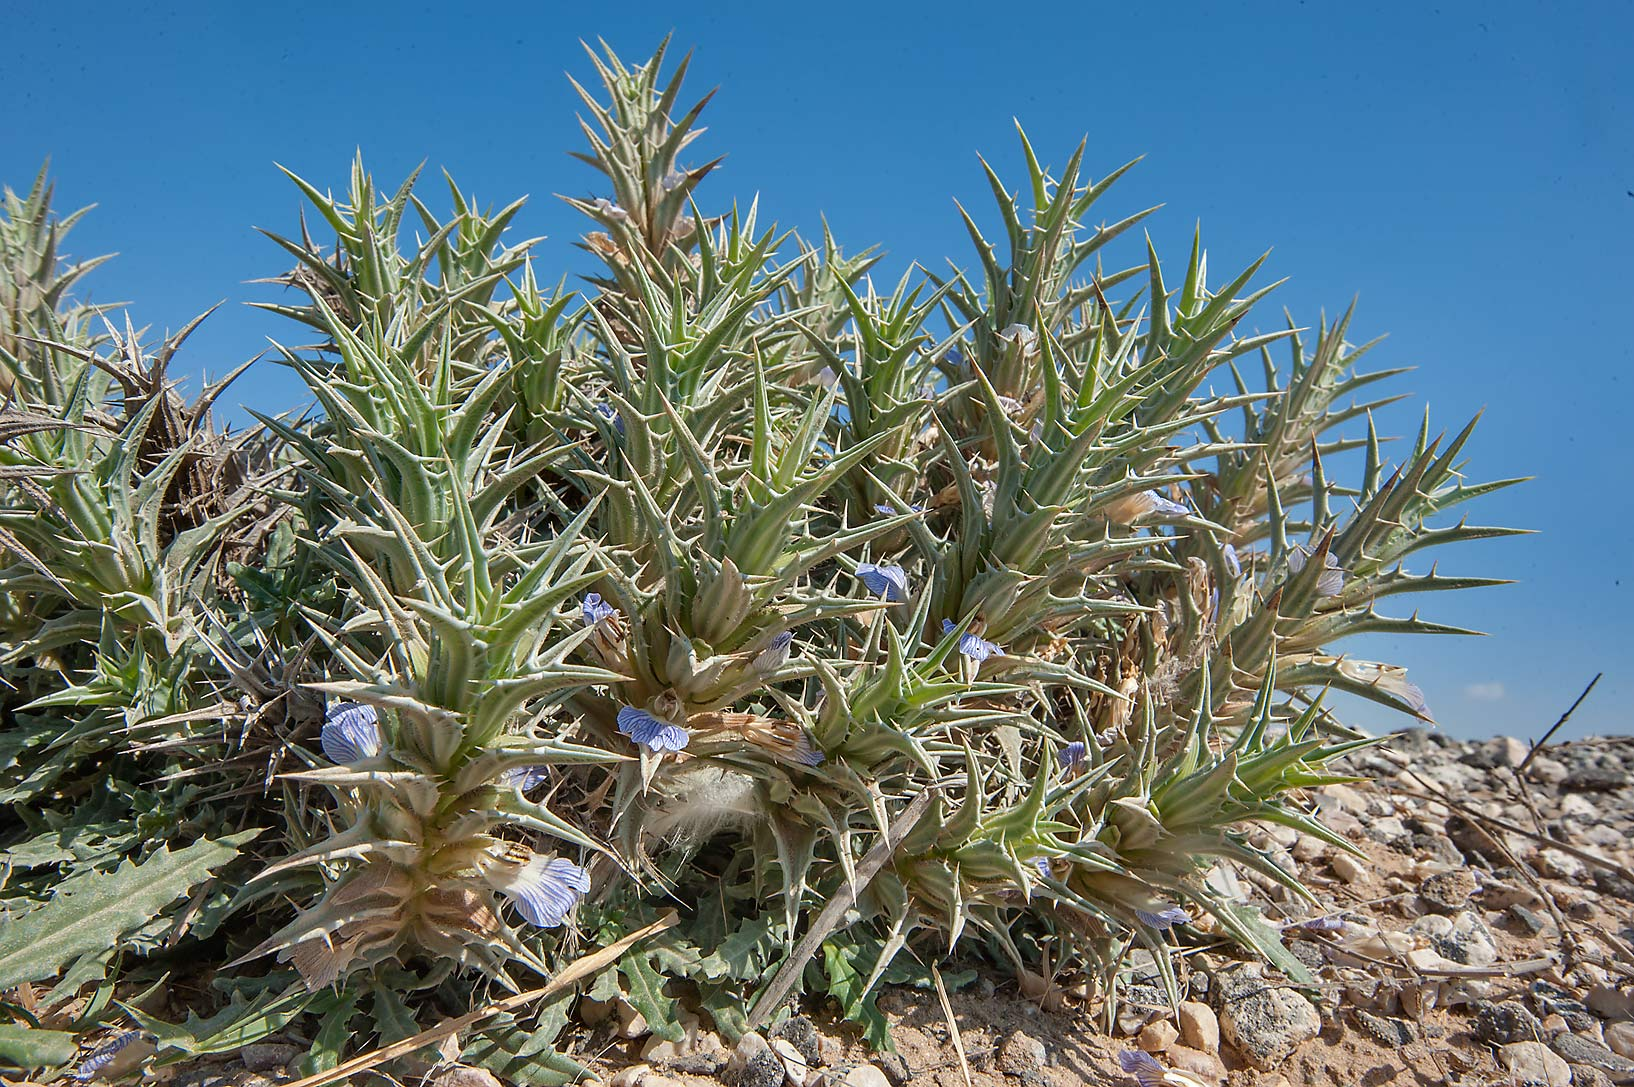 Eyelash plant (Blepharis ciliaris, local names...of a road to Al Numan. Northern Qatar